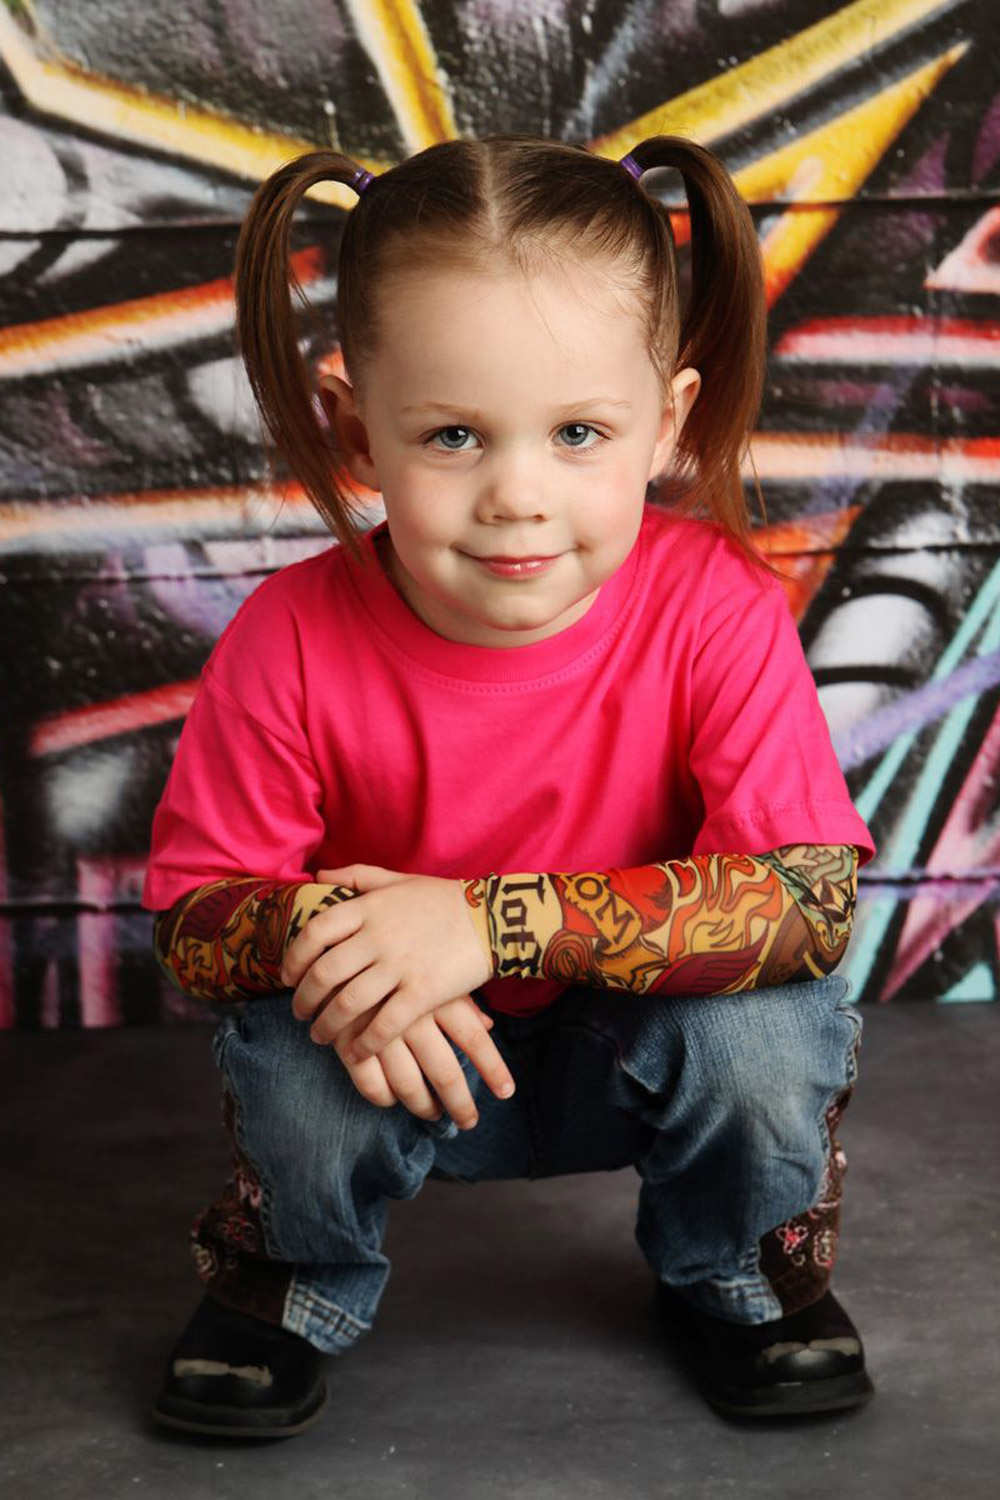 Toddler Fake Babies Mum Designs Fake Tattoo Sleeves For Alternative Babies And